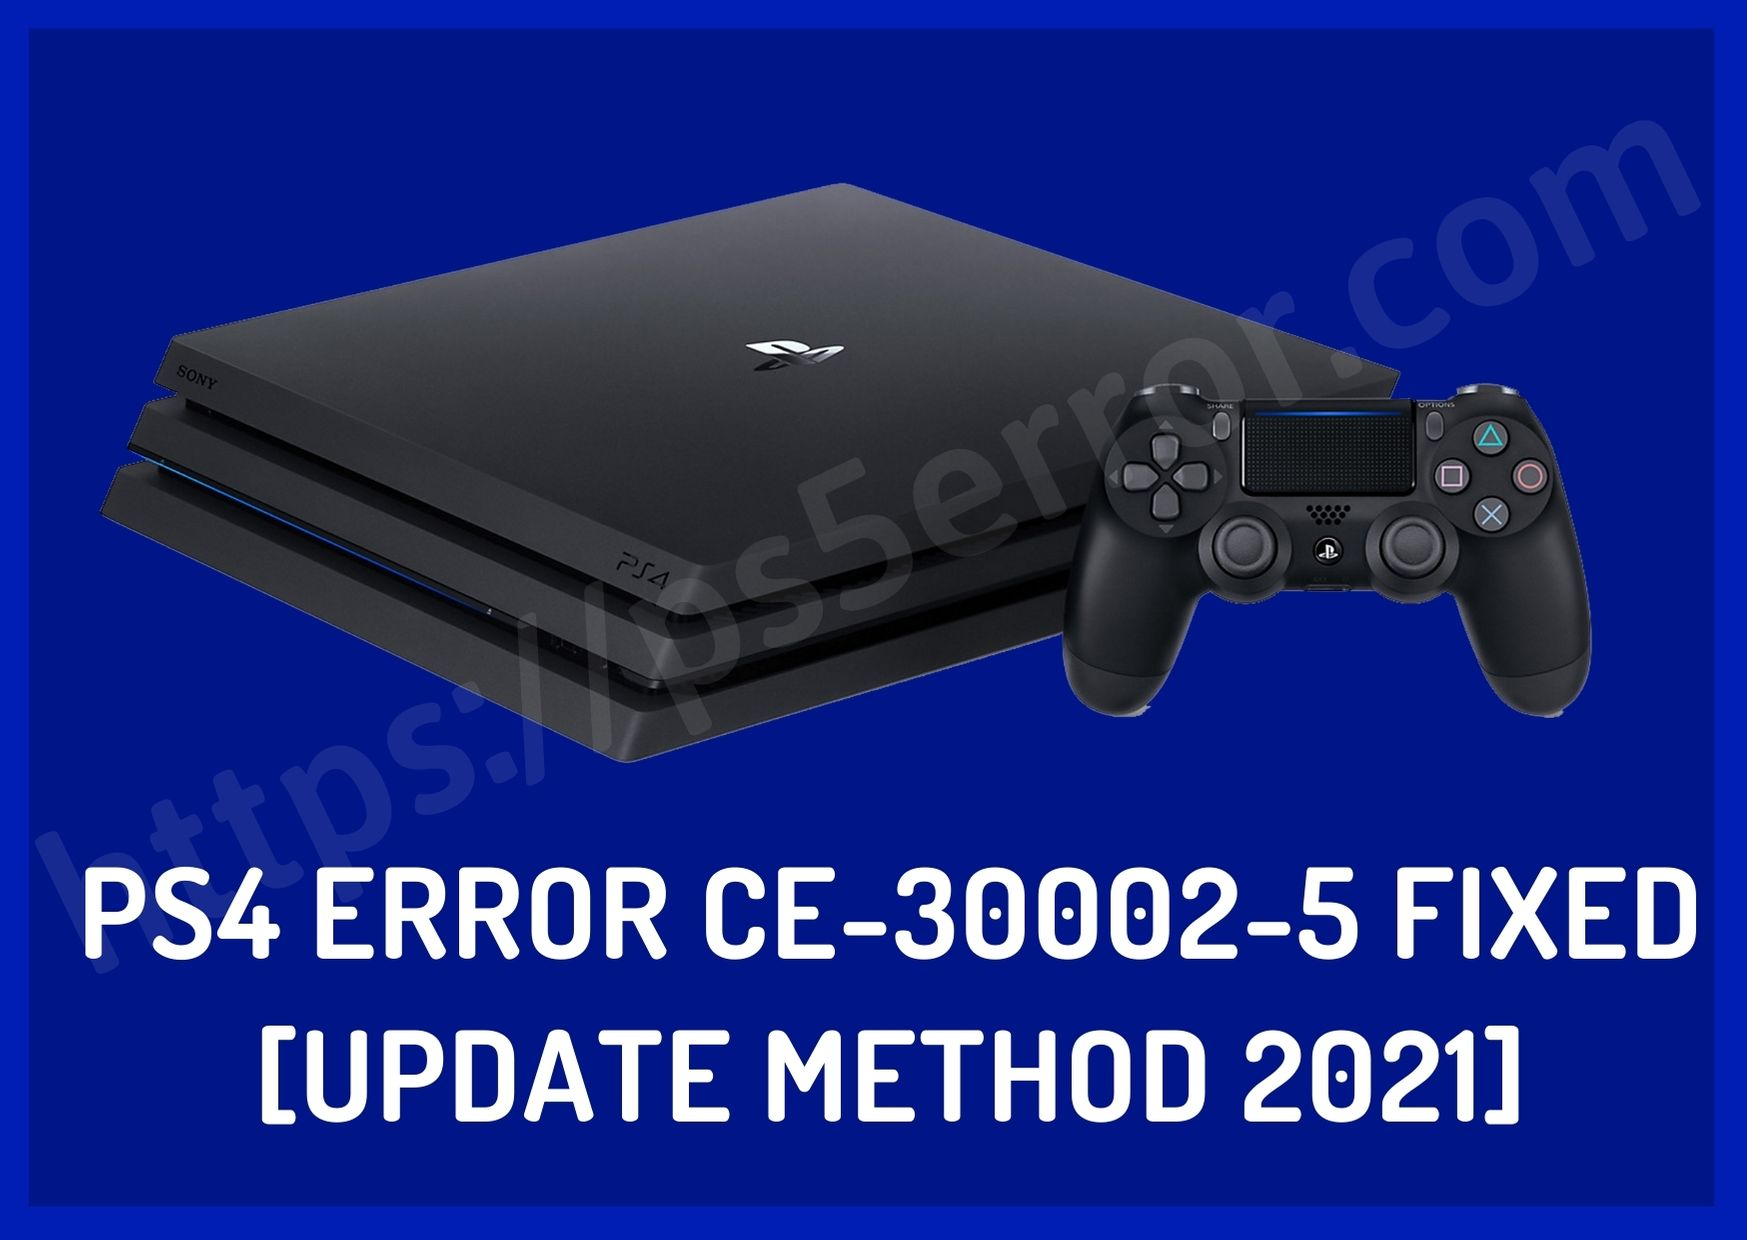 PS4 Error CE-30002-5 Fixed [Update Method 2021]